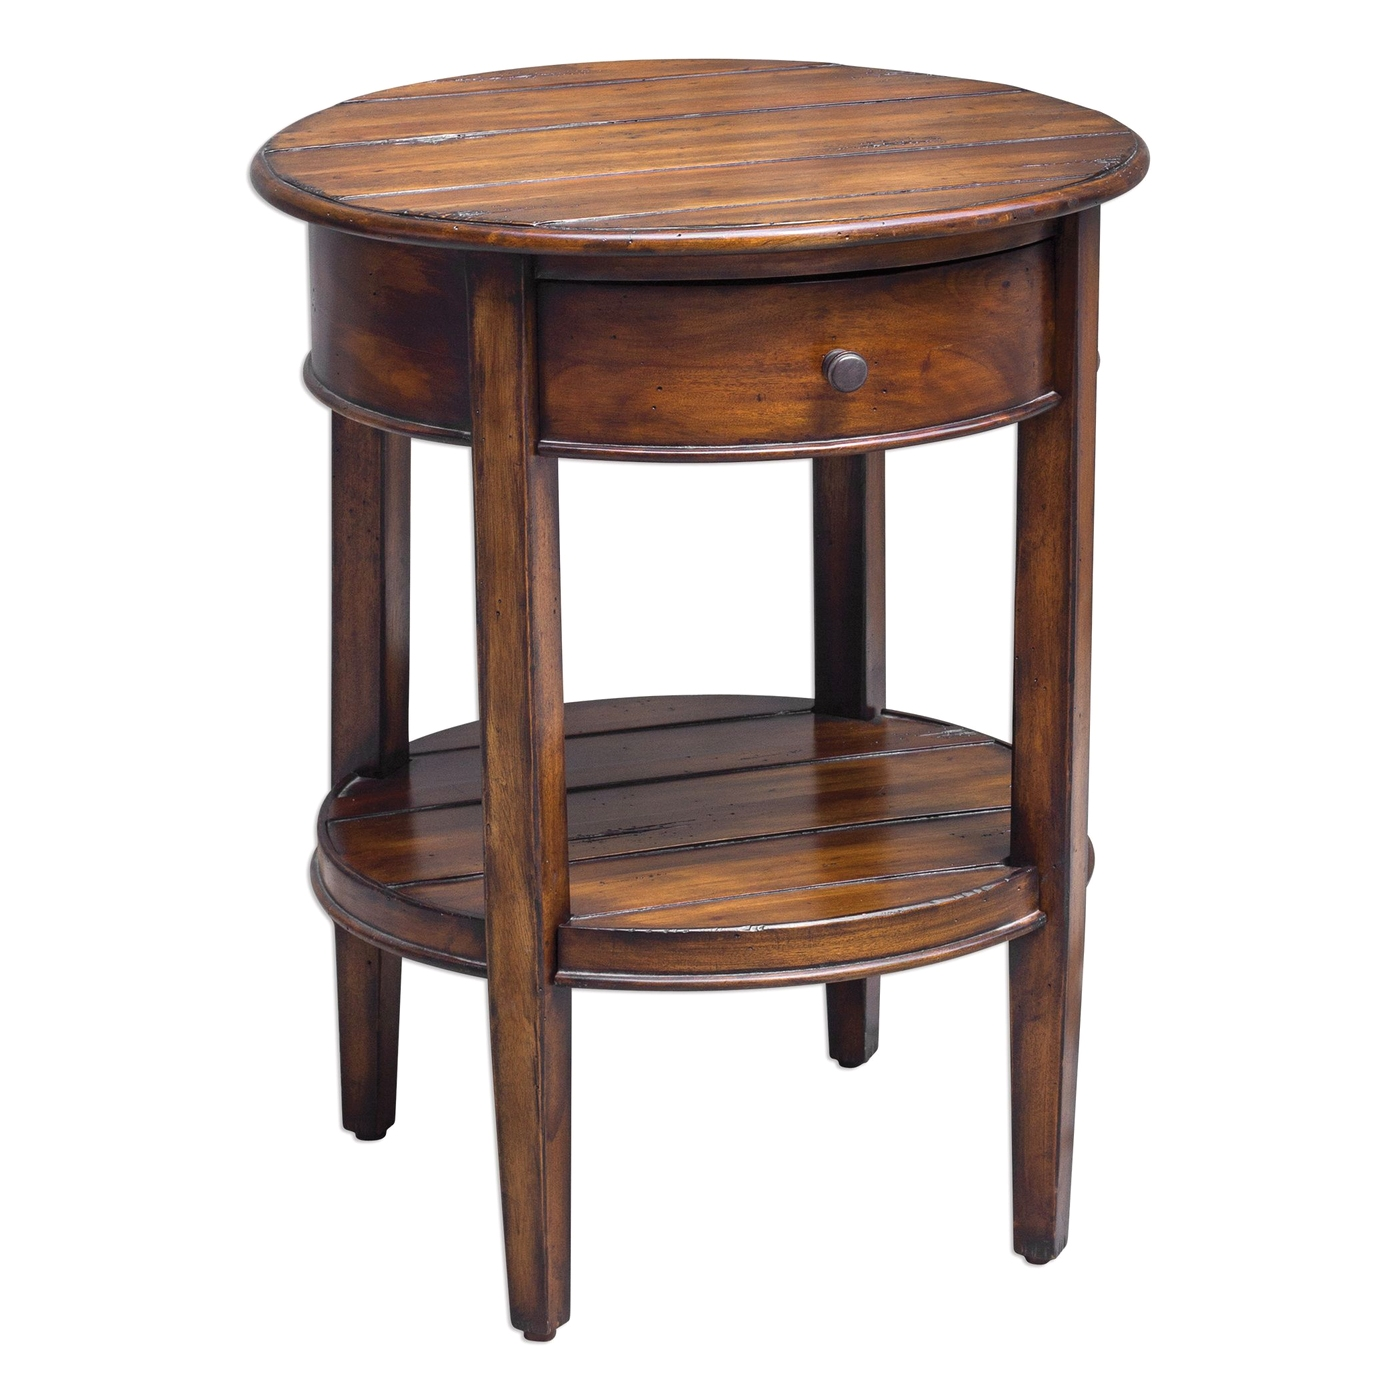 Ranalt Round Deep Grained Mahogany Accent Table With